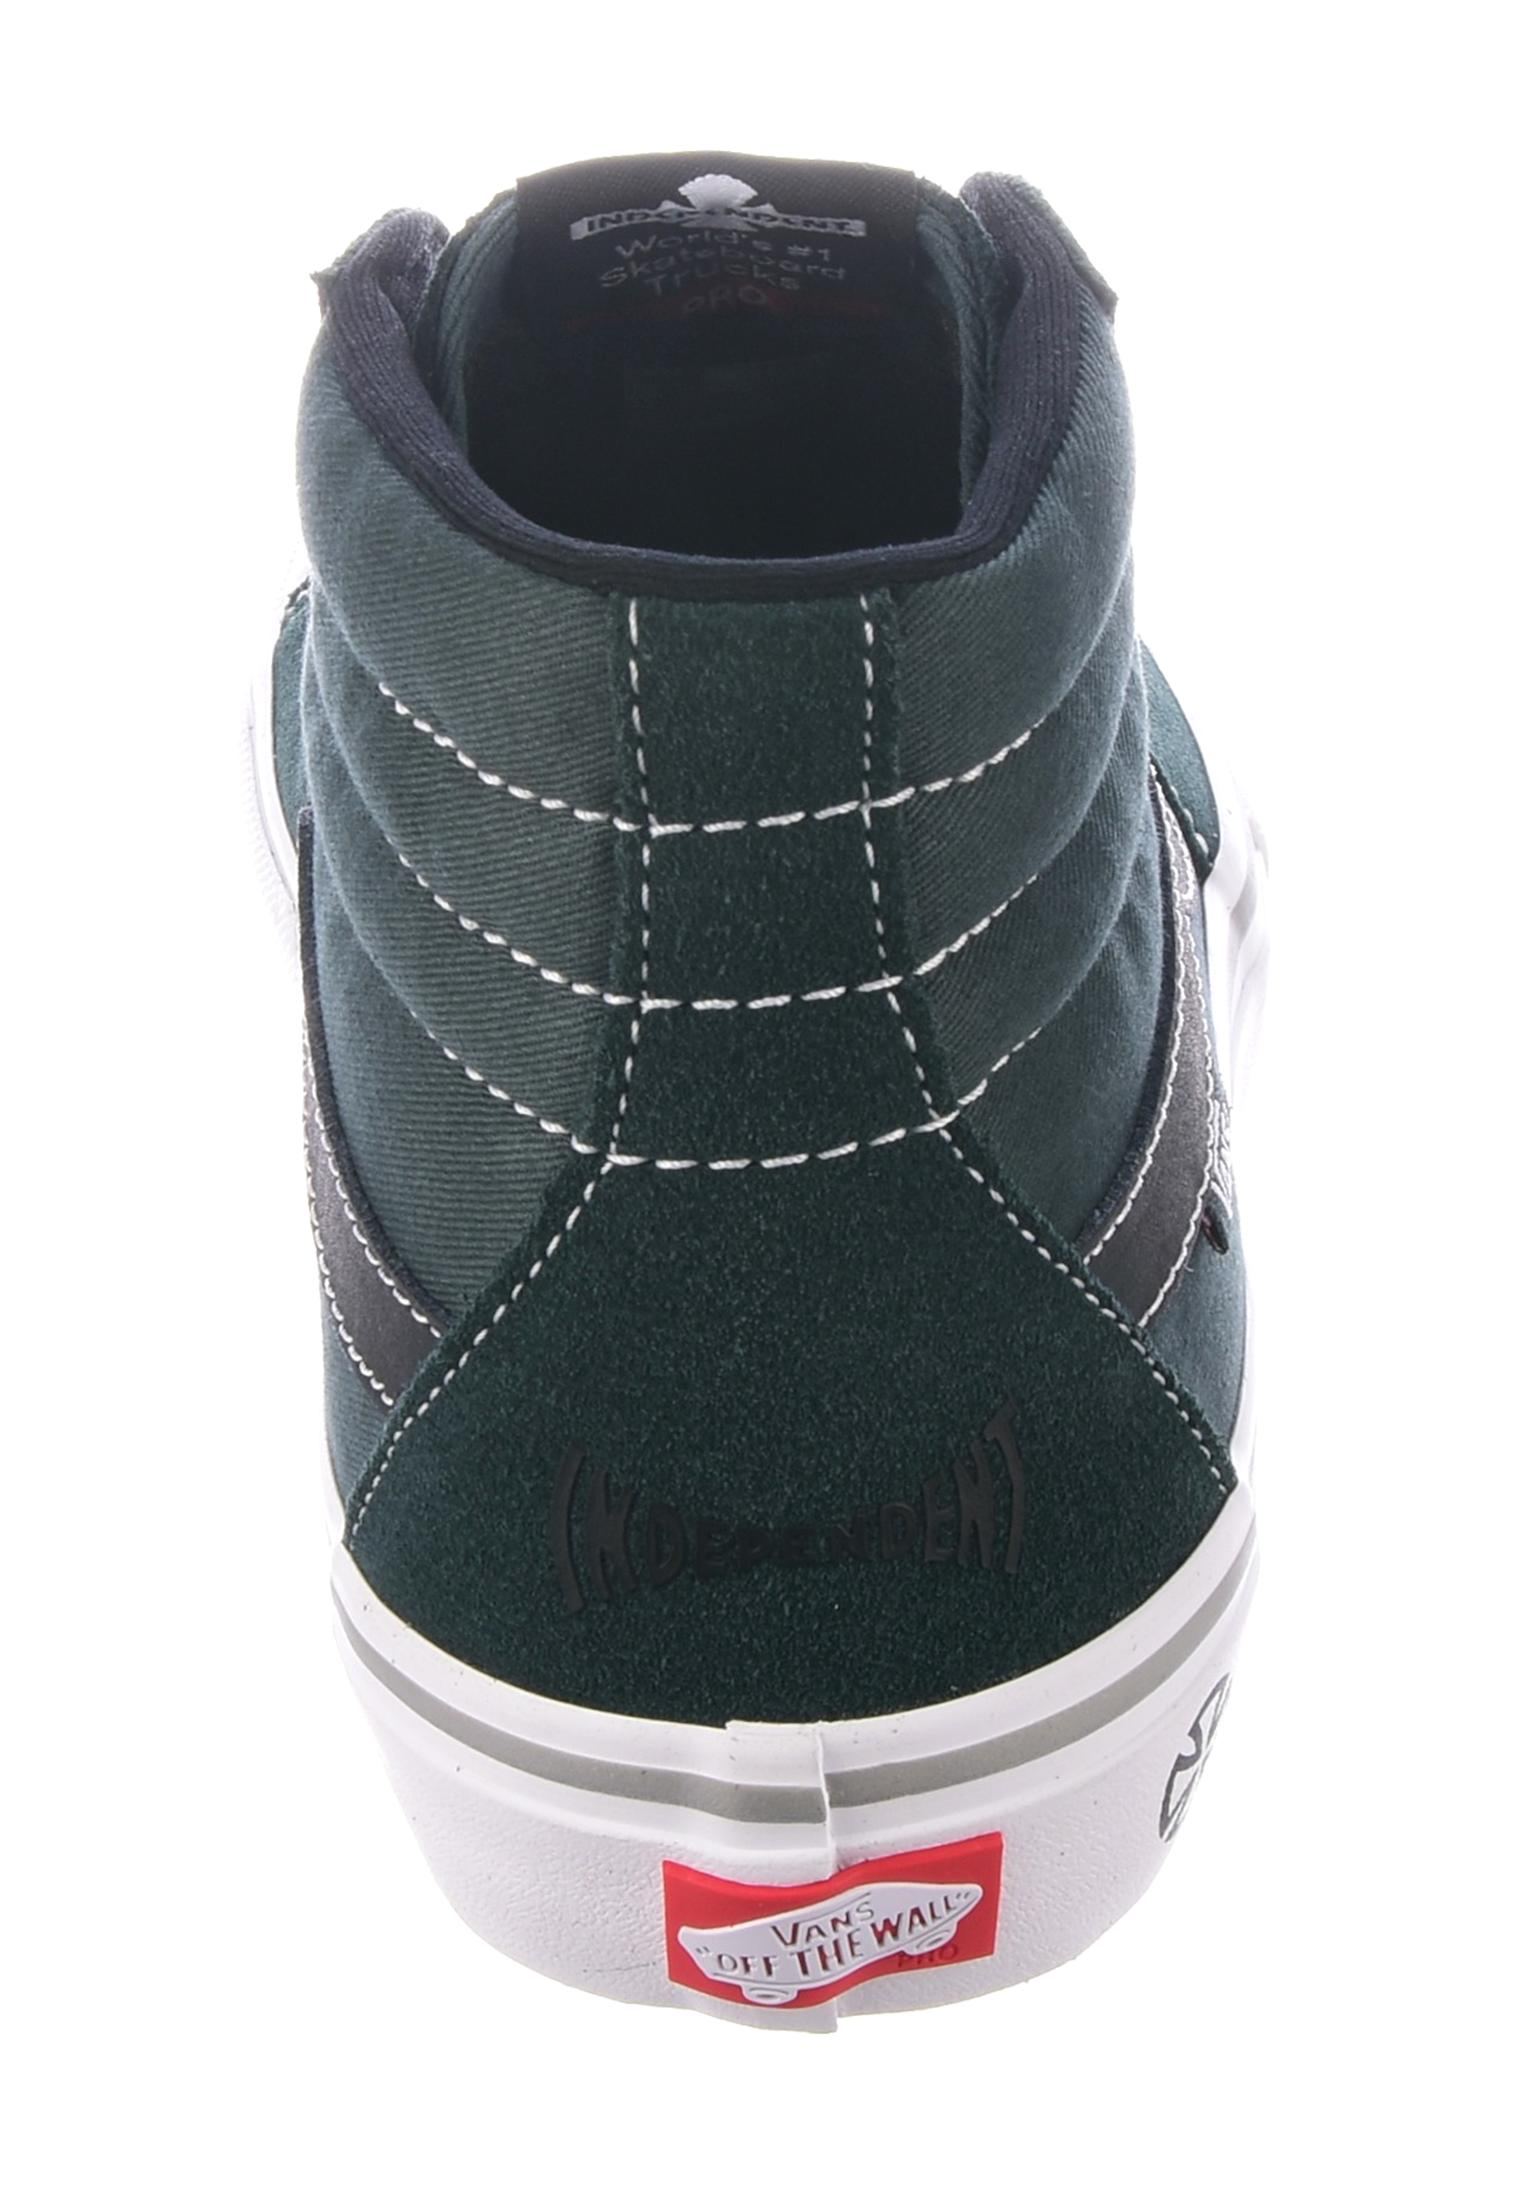 Titus_Muenchen_vans-schuhe-jungs-sk8-hi-pro-x-independent-independent-spruce-0604459_Ferse.jpg